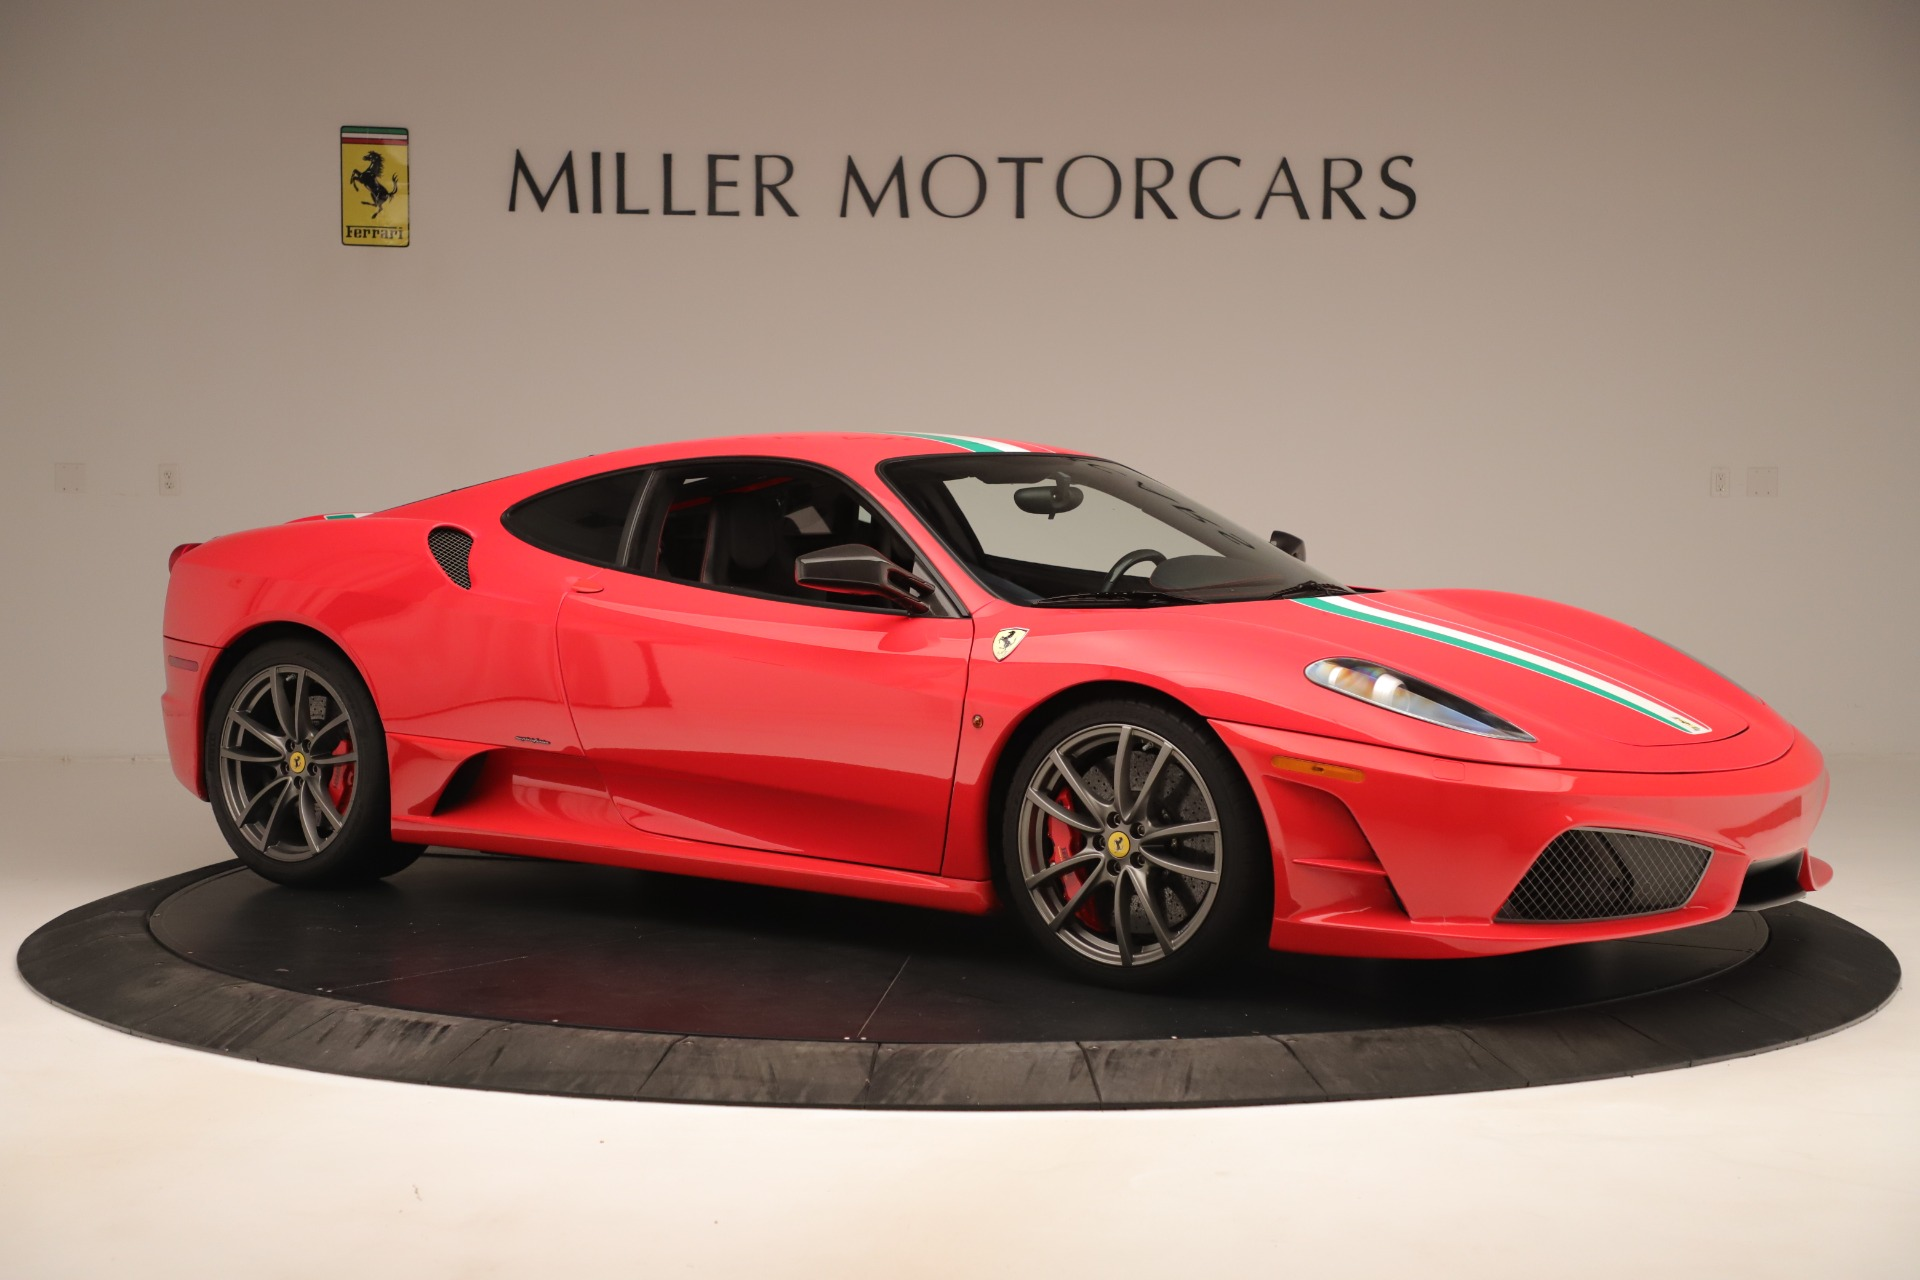 Used 2008 Ferrari F430 Scuderia For Sale In Greenwich, CT 3381_p10